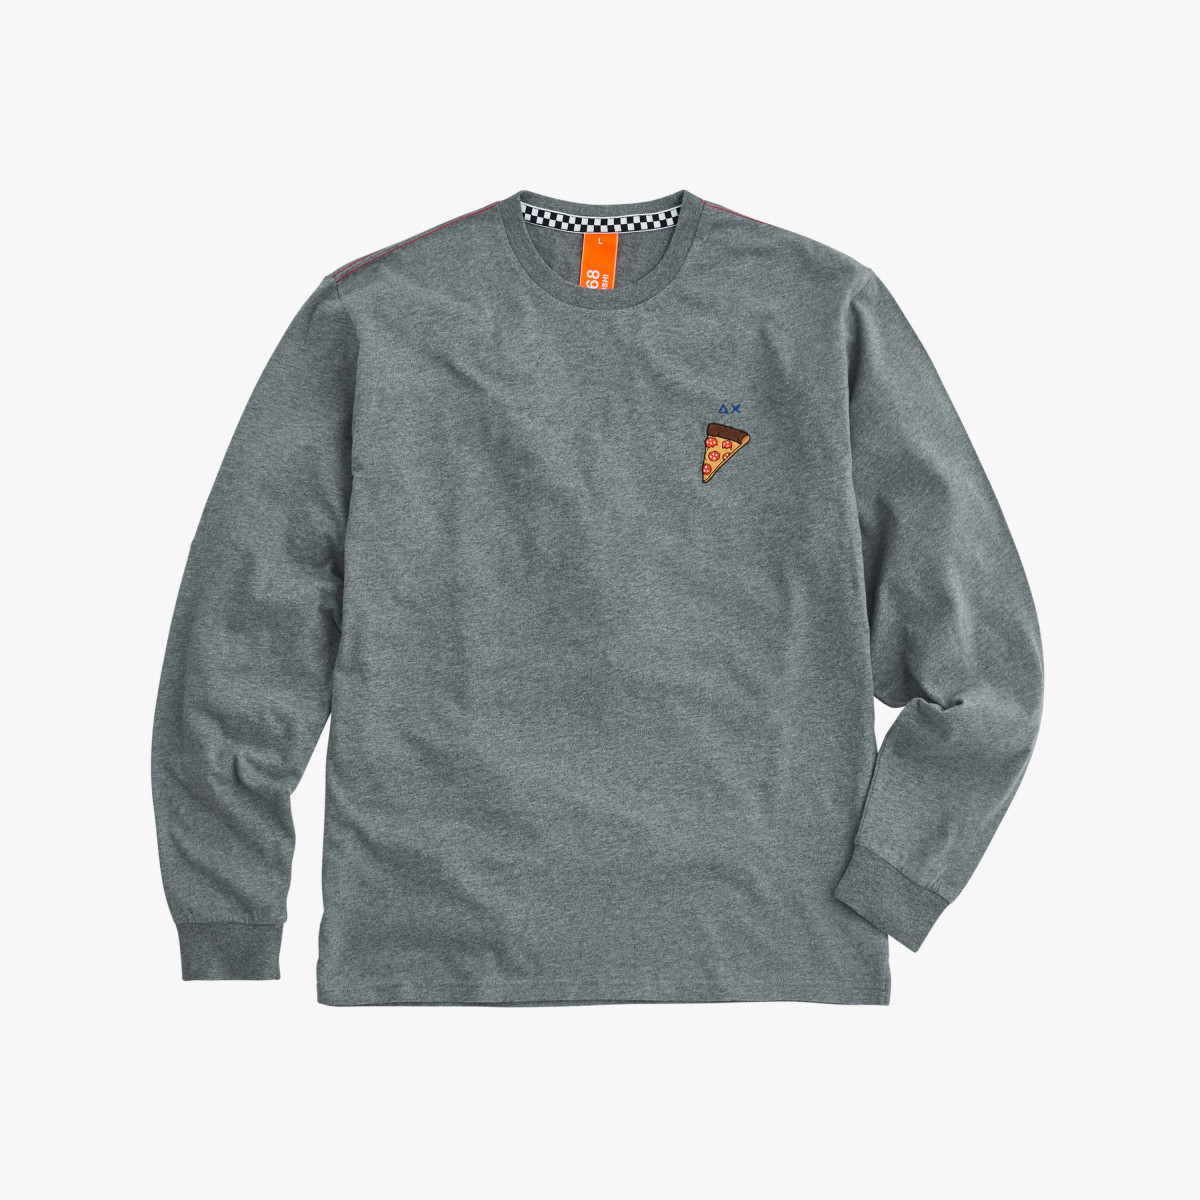 ROUND T-SHIRT WITH PRINT L/S GRIGIO MEDIO